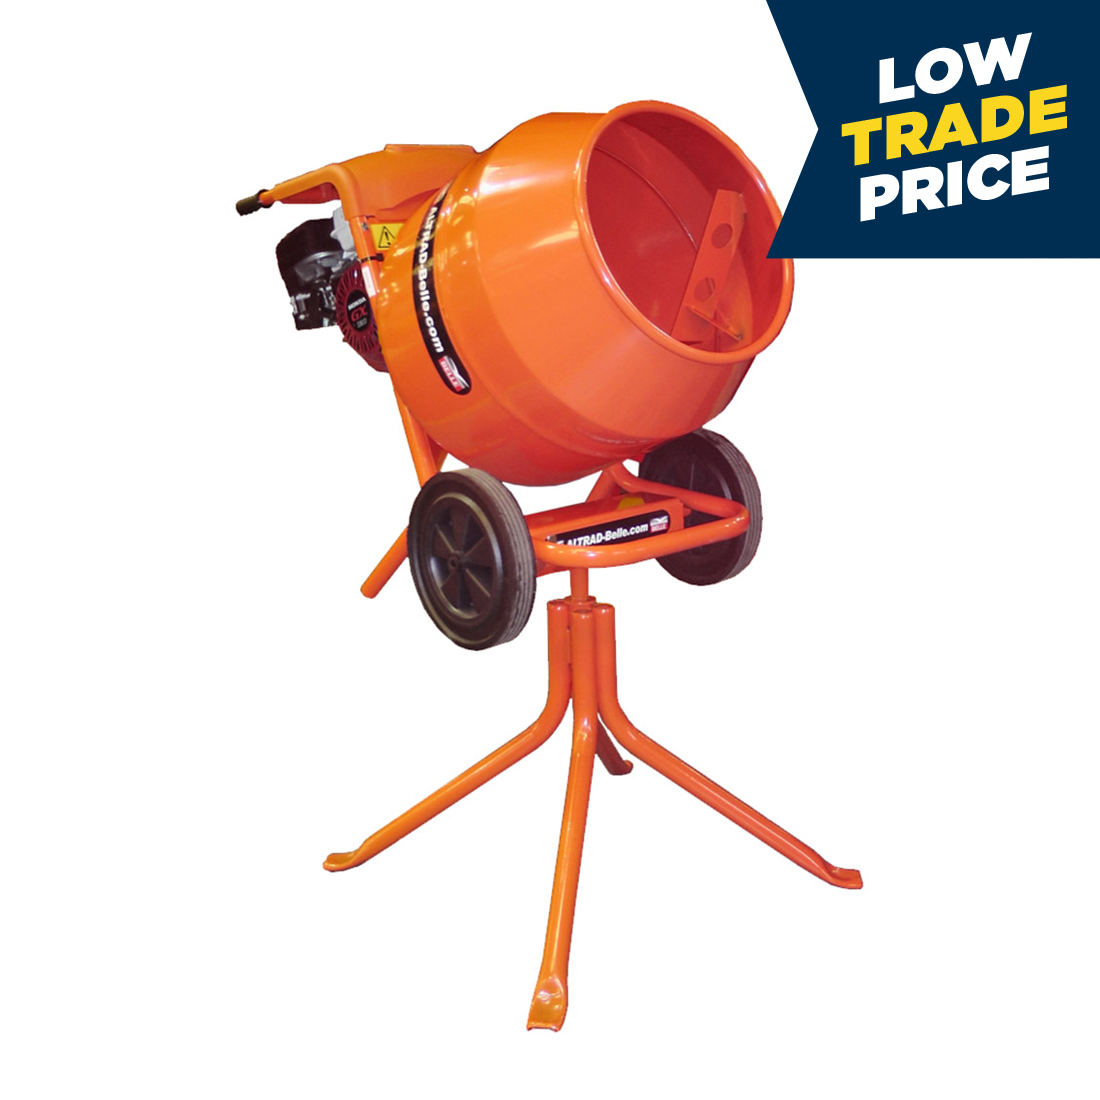 Concrete Mixer Tip-Up Petrol